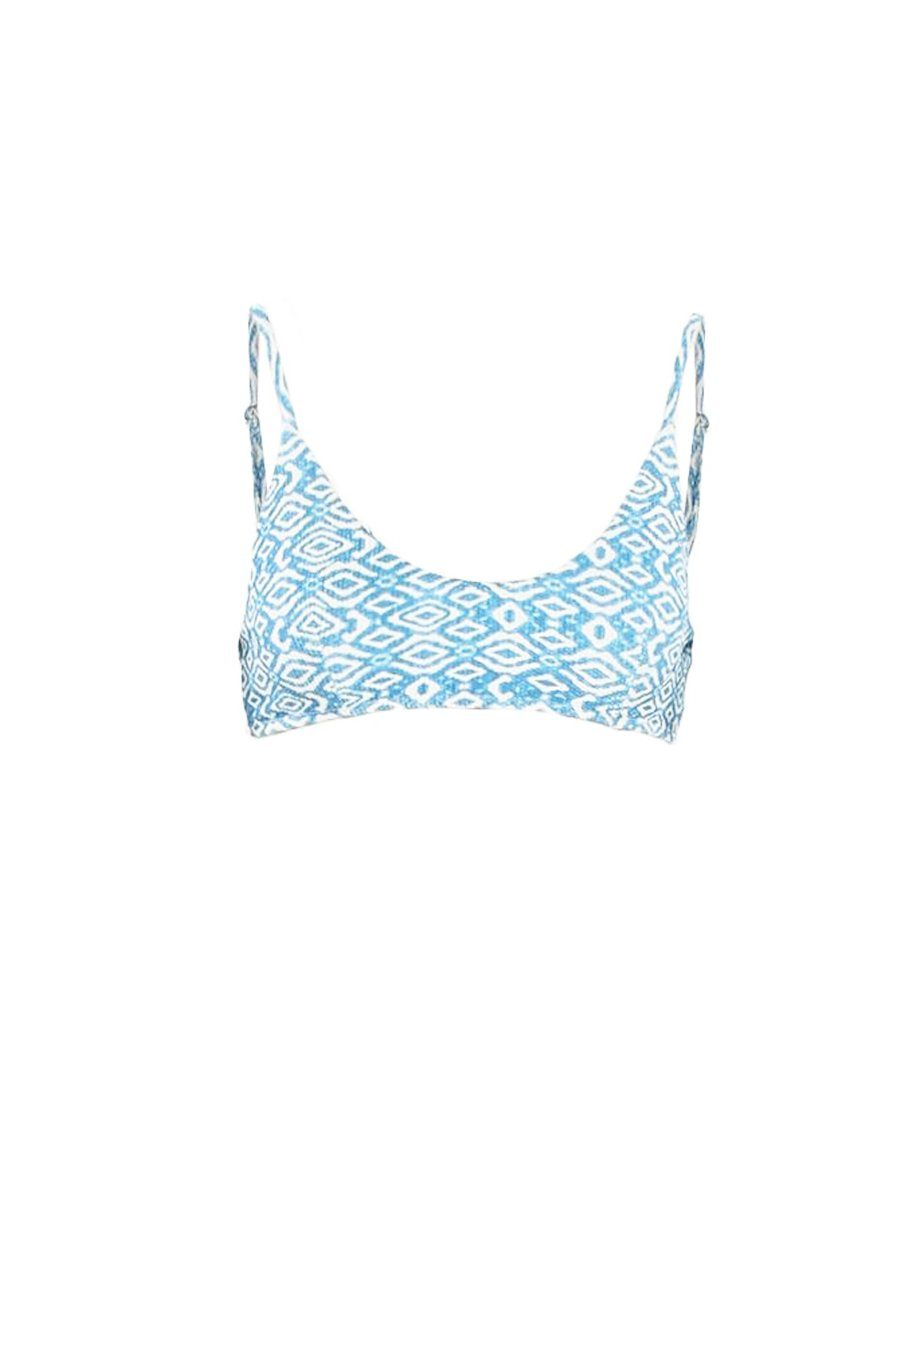 Swoop Top - Blue Diamond